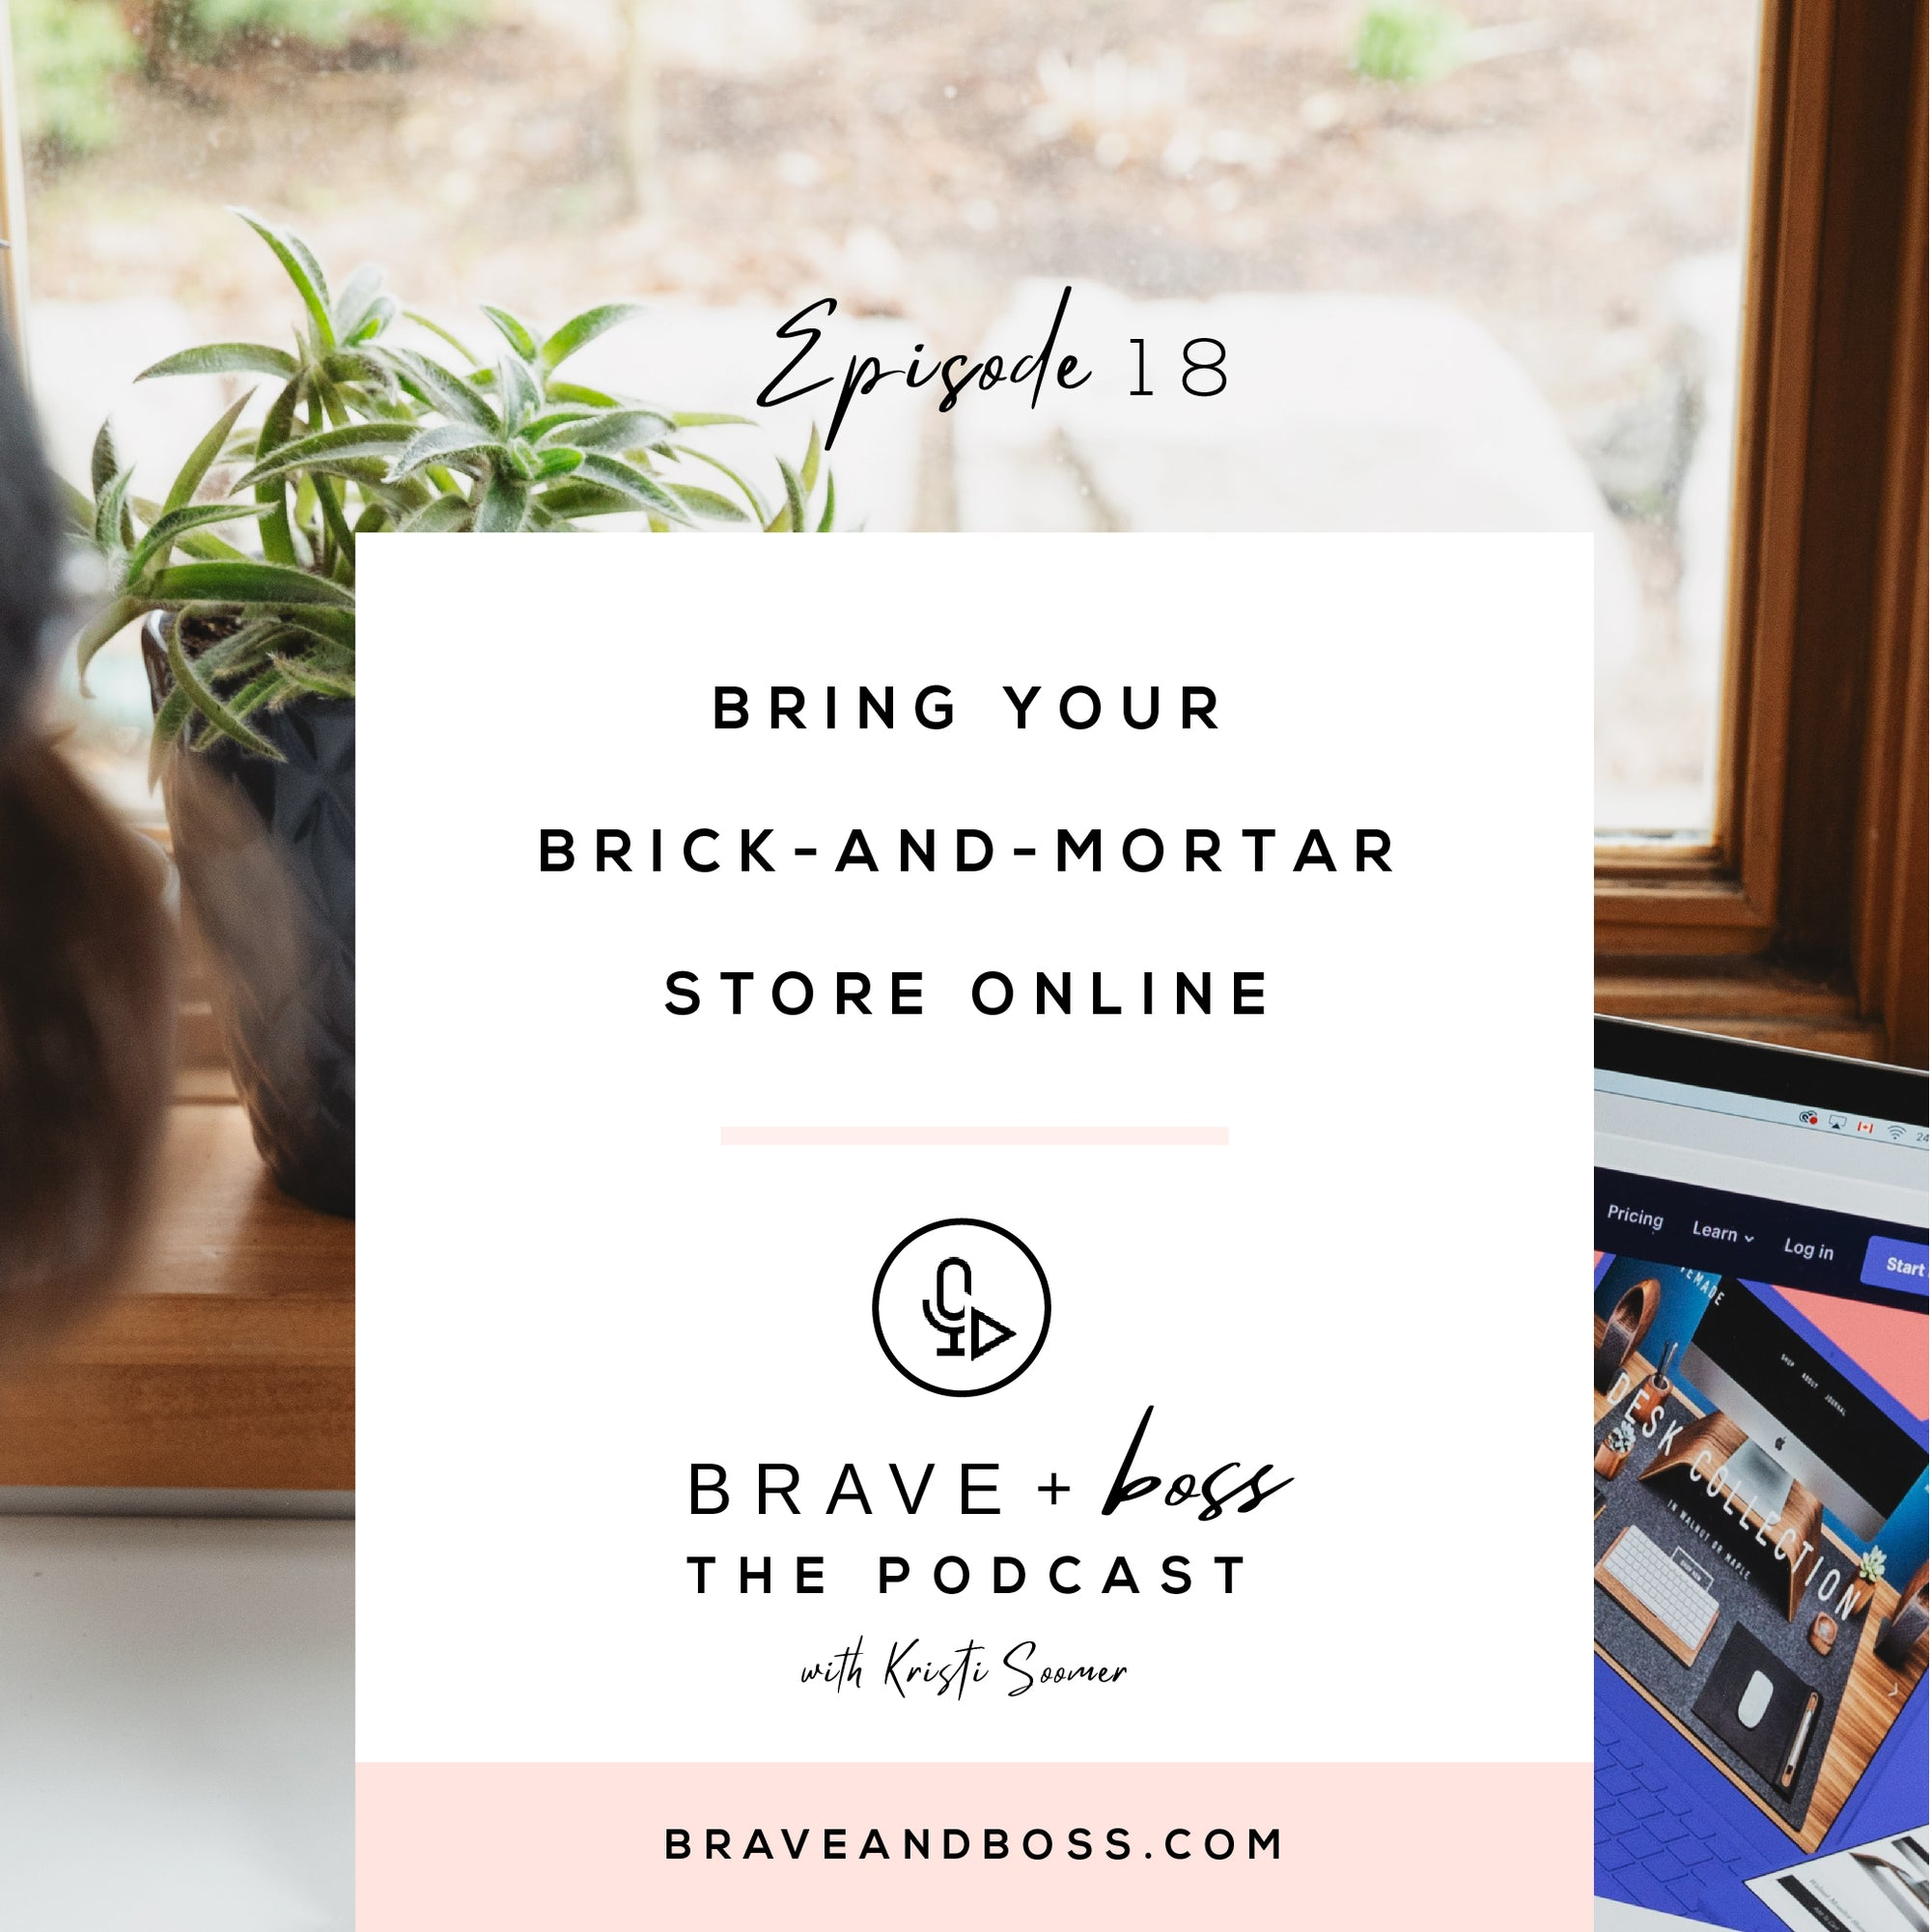 Bring your Brick-and-Mortar Store Online